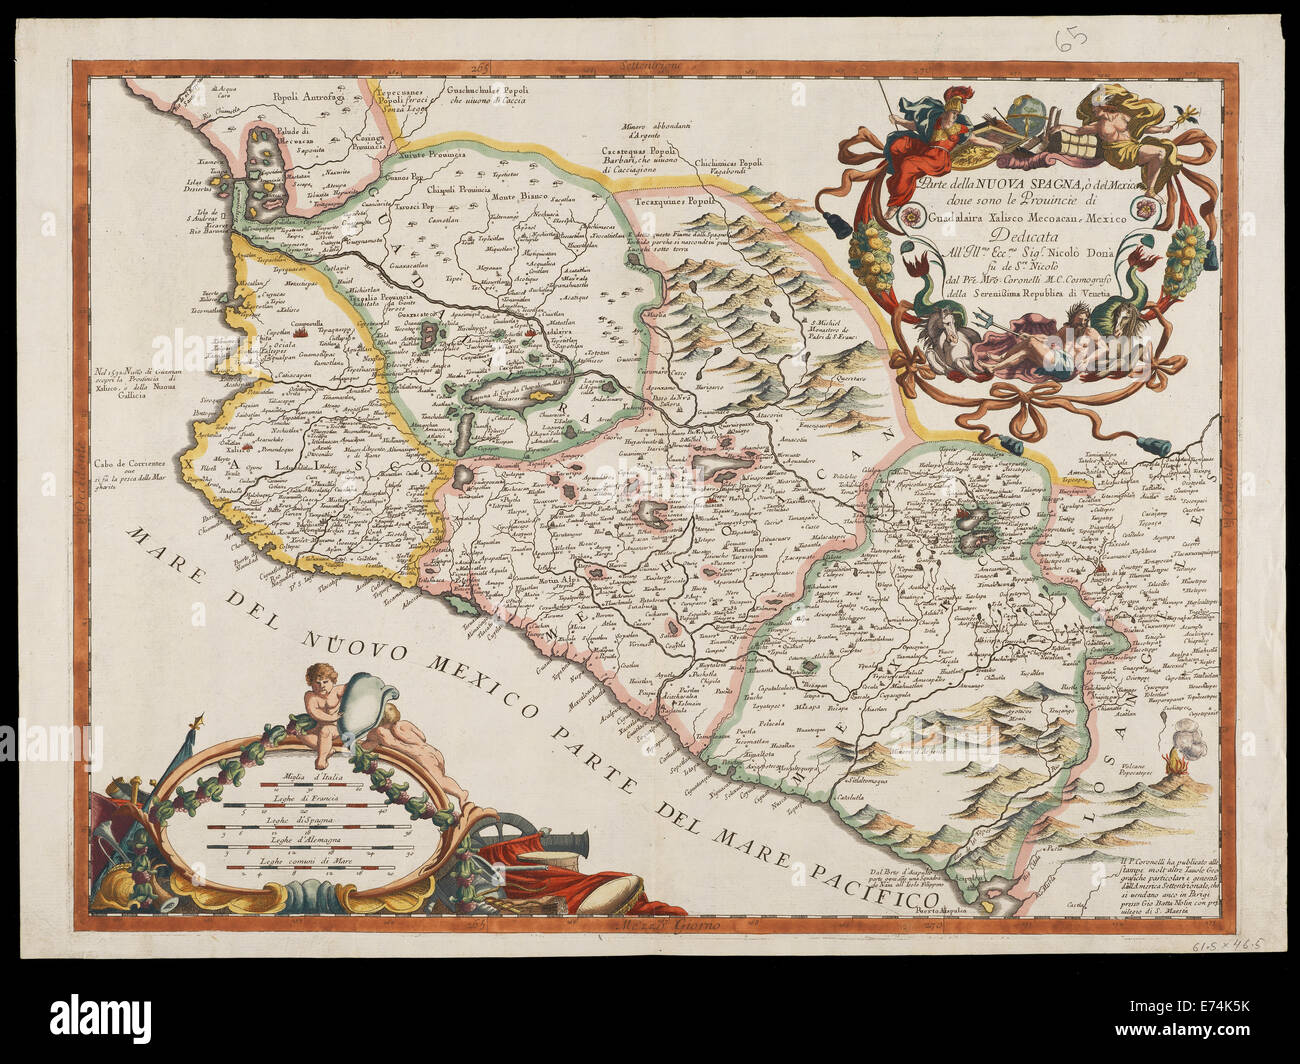 Gutierrez collection of maps and images of the Americas - Stock Image